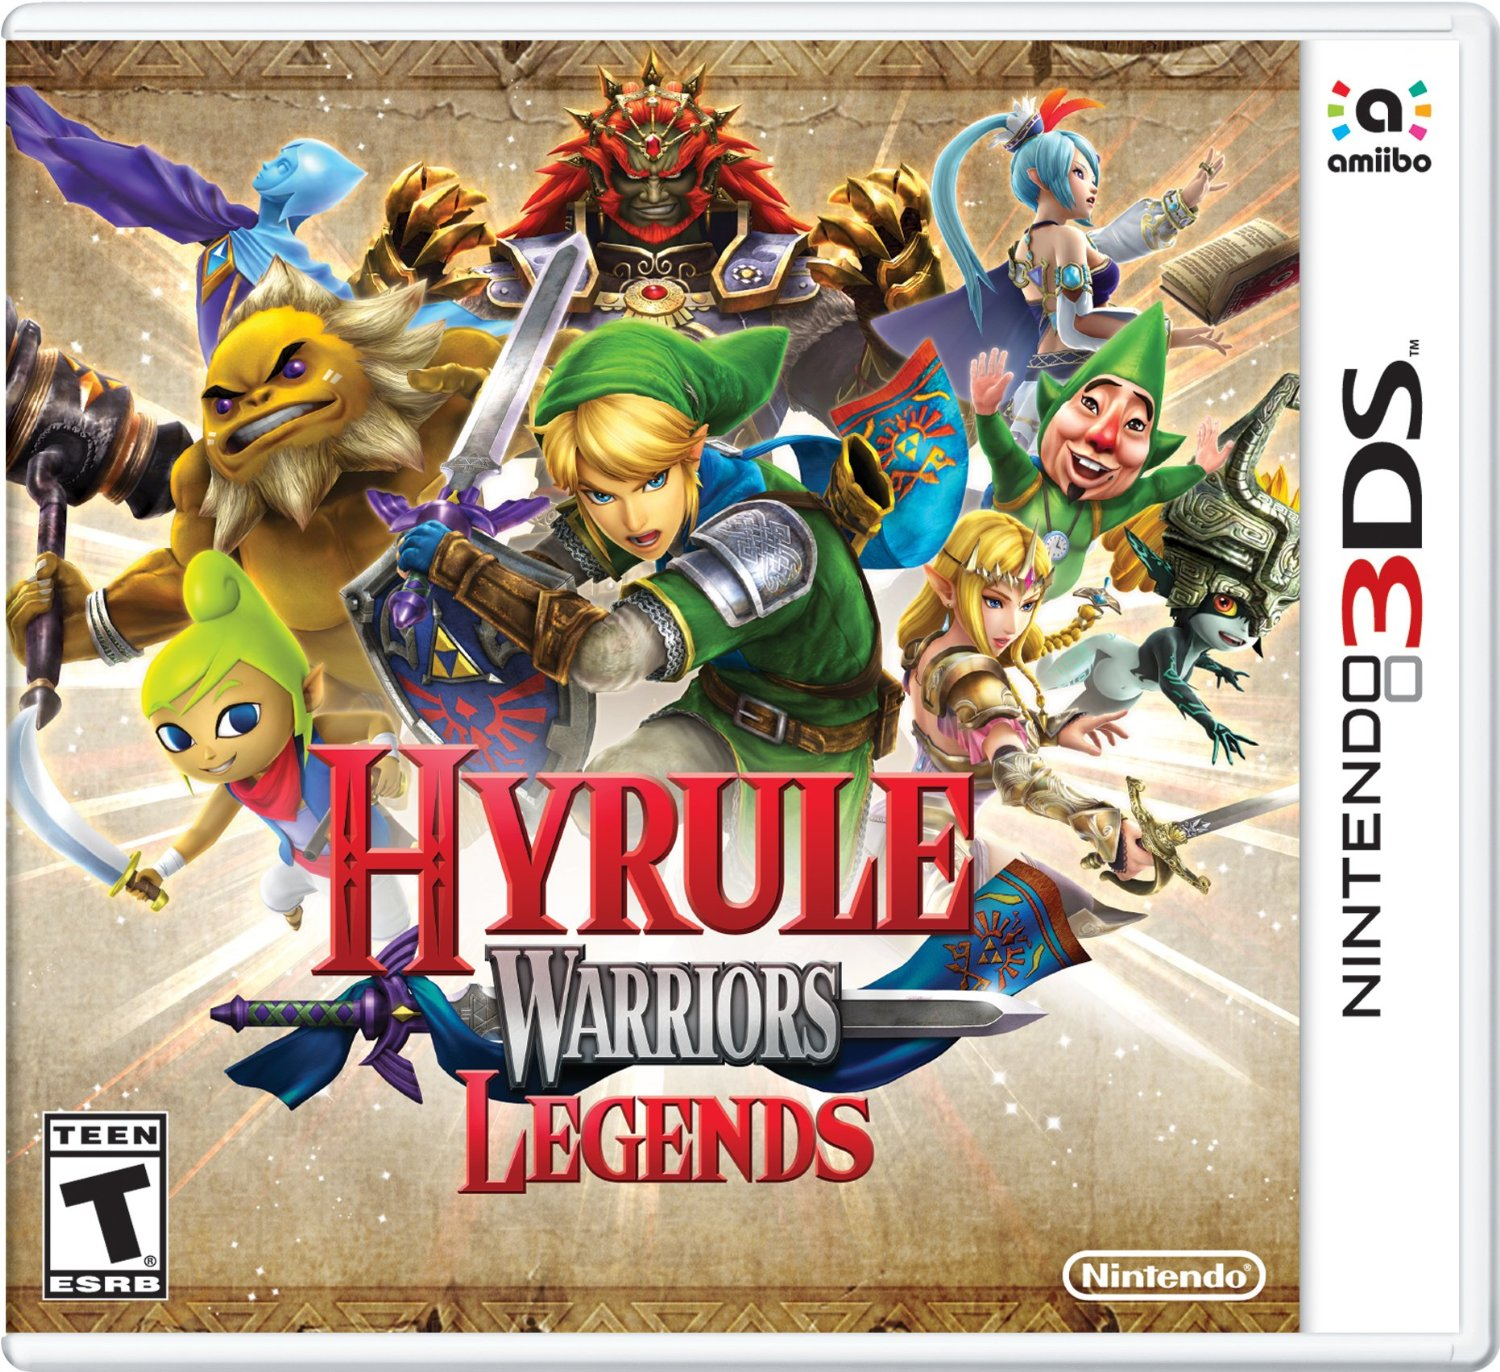 2648 - Hyrule Warriors Legends - 25-03-2016 - Beat-'Em-Up - 7